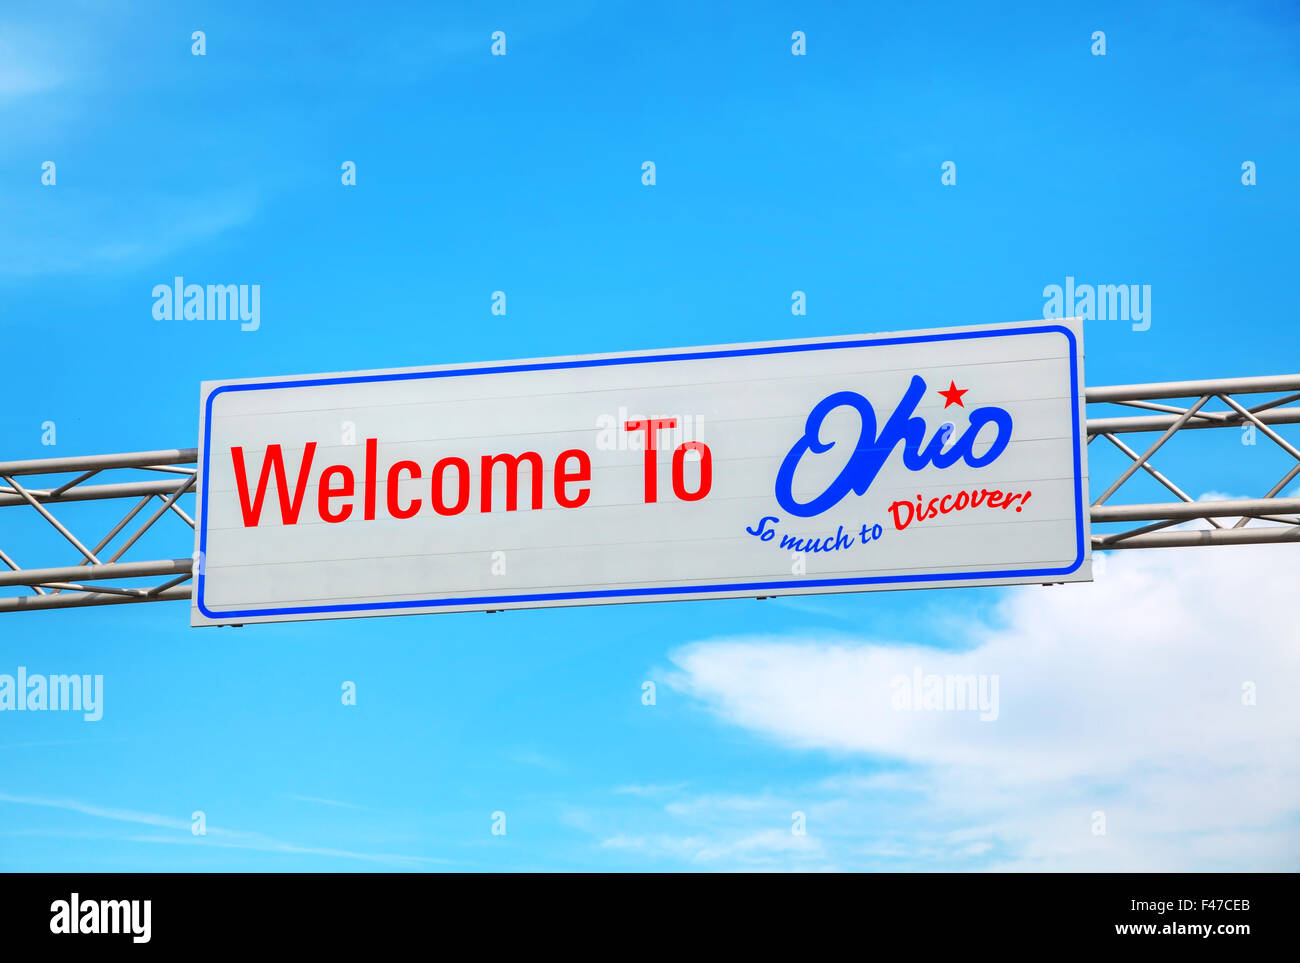 Welcome to Ohio sign - Stock Image